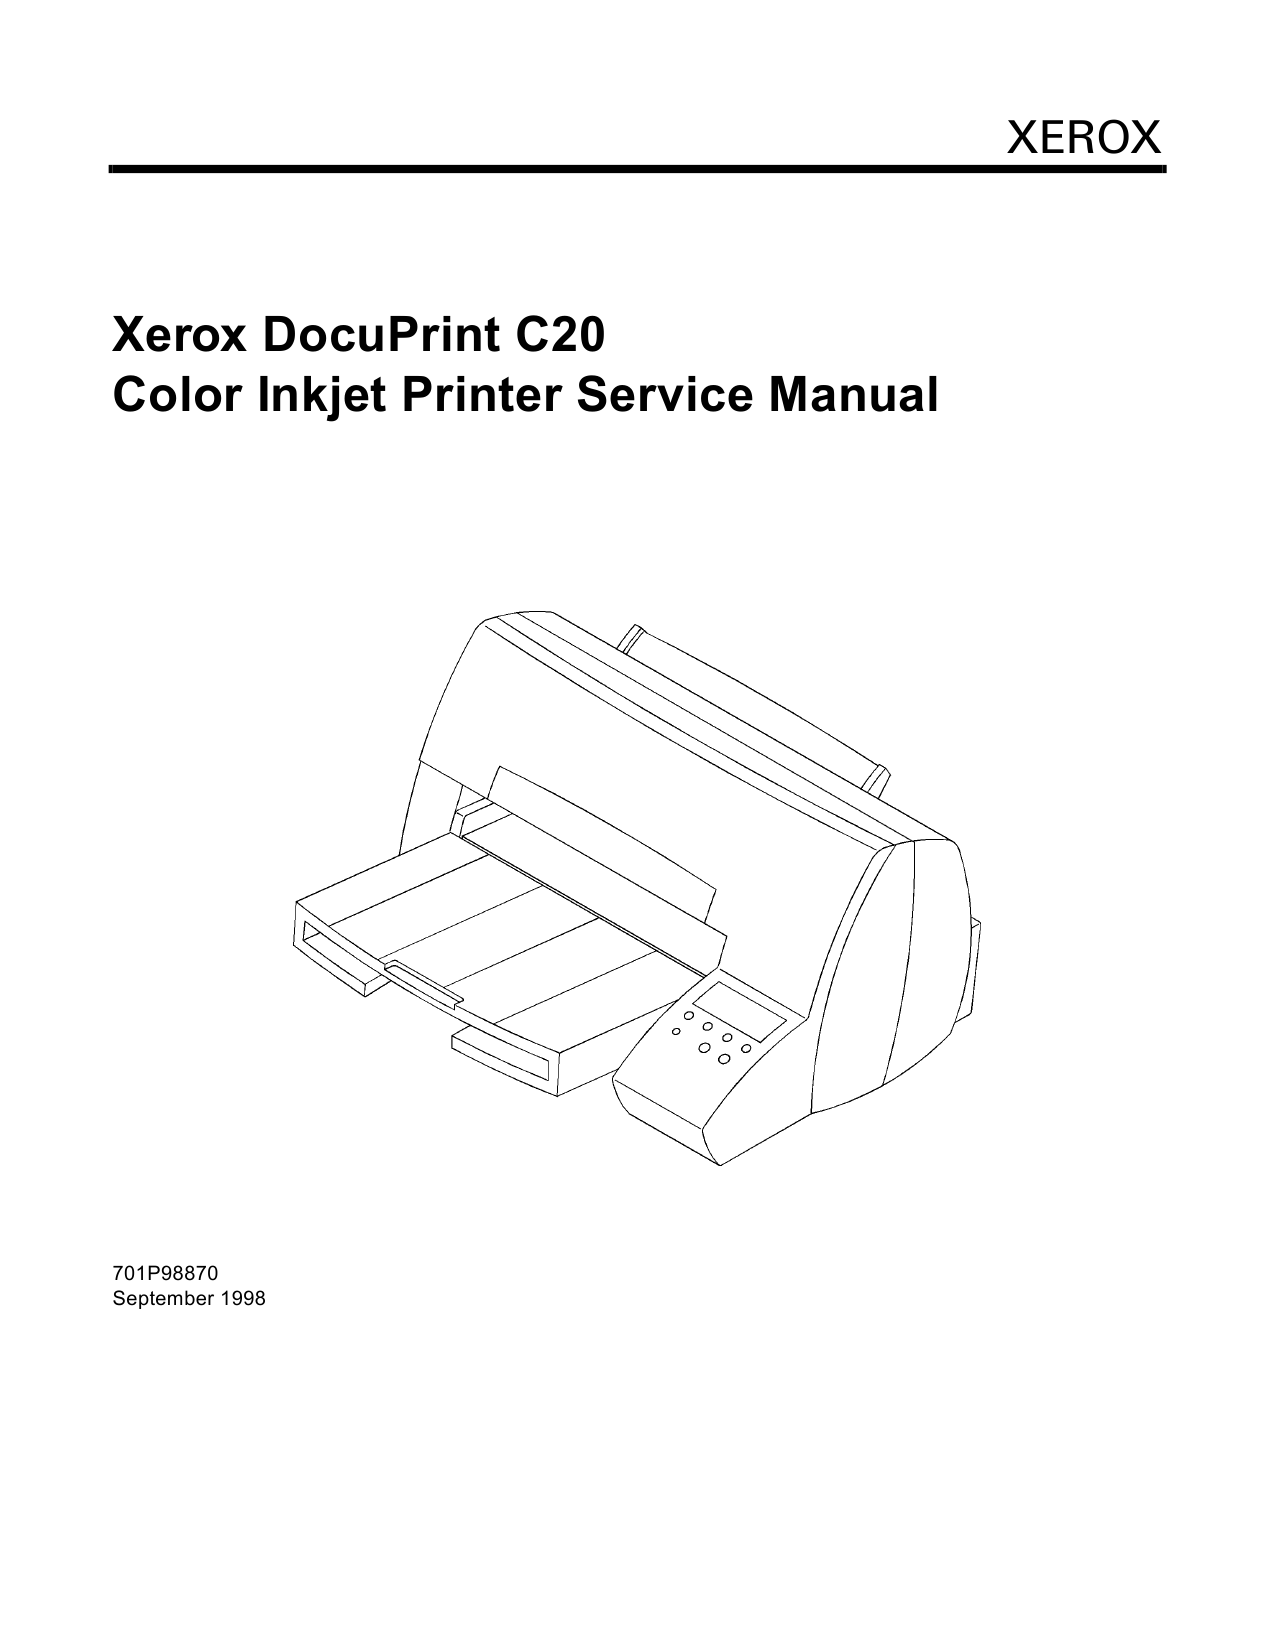 Xerox DocuPrint C20 Parts List and Service Manual-1